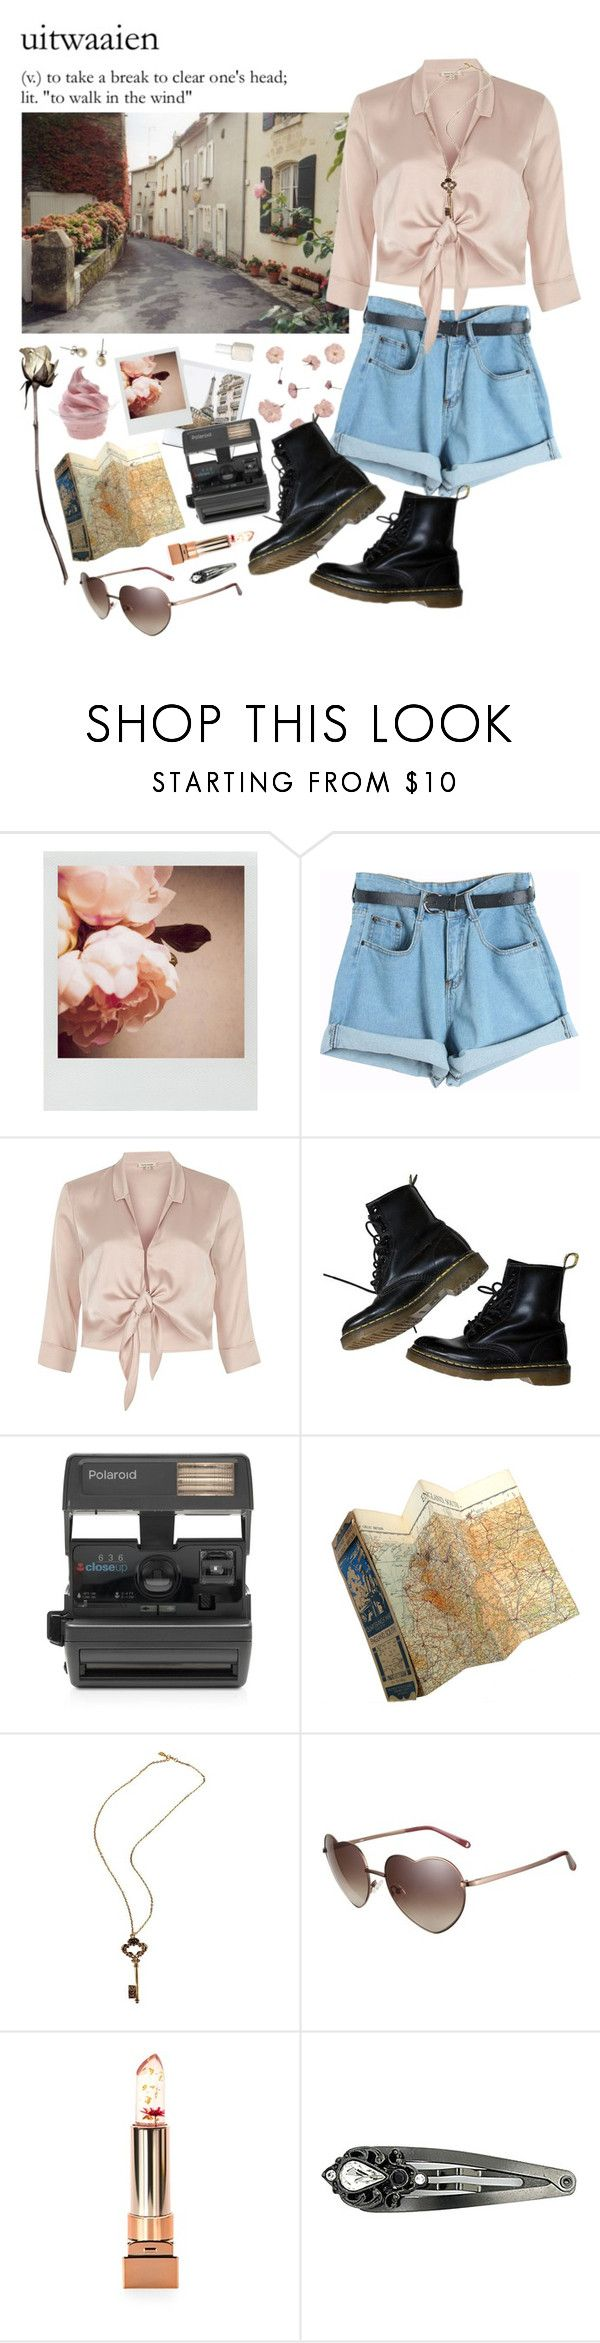 """uitwaaien"" by anastaziah2014 ❤ liked on Polyvore featuring Polaroid, Chicnova Fashion, River Island, Dr. Martens, Impossible, Essie, Love, Disney, Forever 21 and 1928"